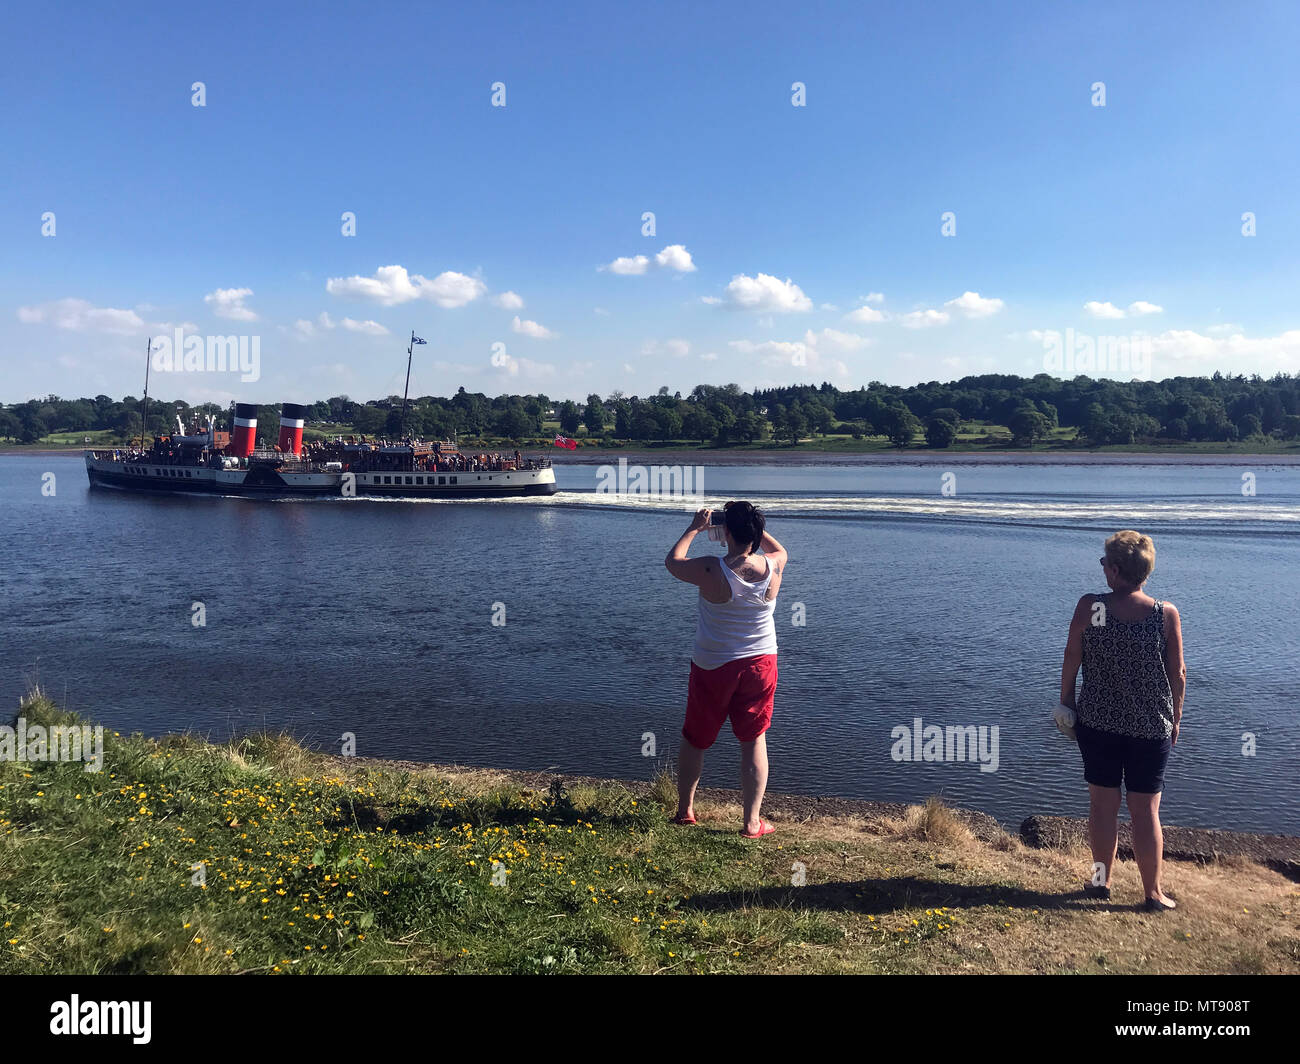 Glasgow, UK. 28th May, 2018. Members of the public take pictures of the PS Waverly as she travels up the River Clyde towards Glasgow, Scotland. PS Waverley is the last seagoing passenger-carrying paddle steamer in the world. Built in 1946, she sailed from Craigendoran on the Firth of Clyde to Arrochar on Loch Long until 1973.   28/5/18  Picture © Andy Buchanan 2018 Credit: Andy Buchanan/Alamy Live News Stock Photo